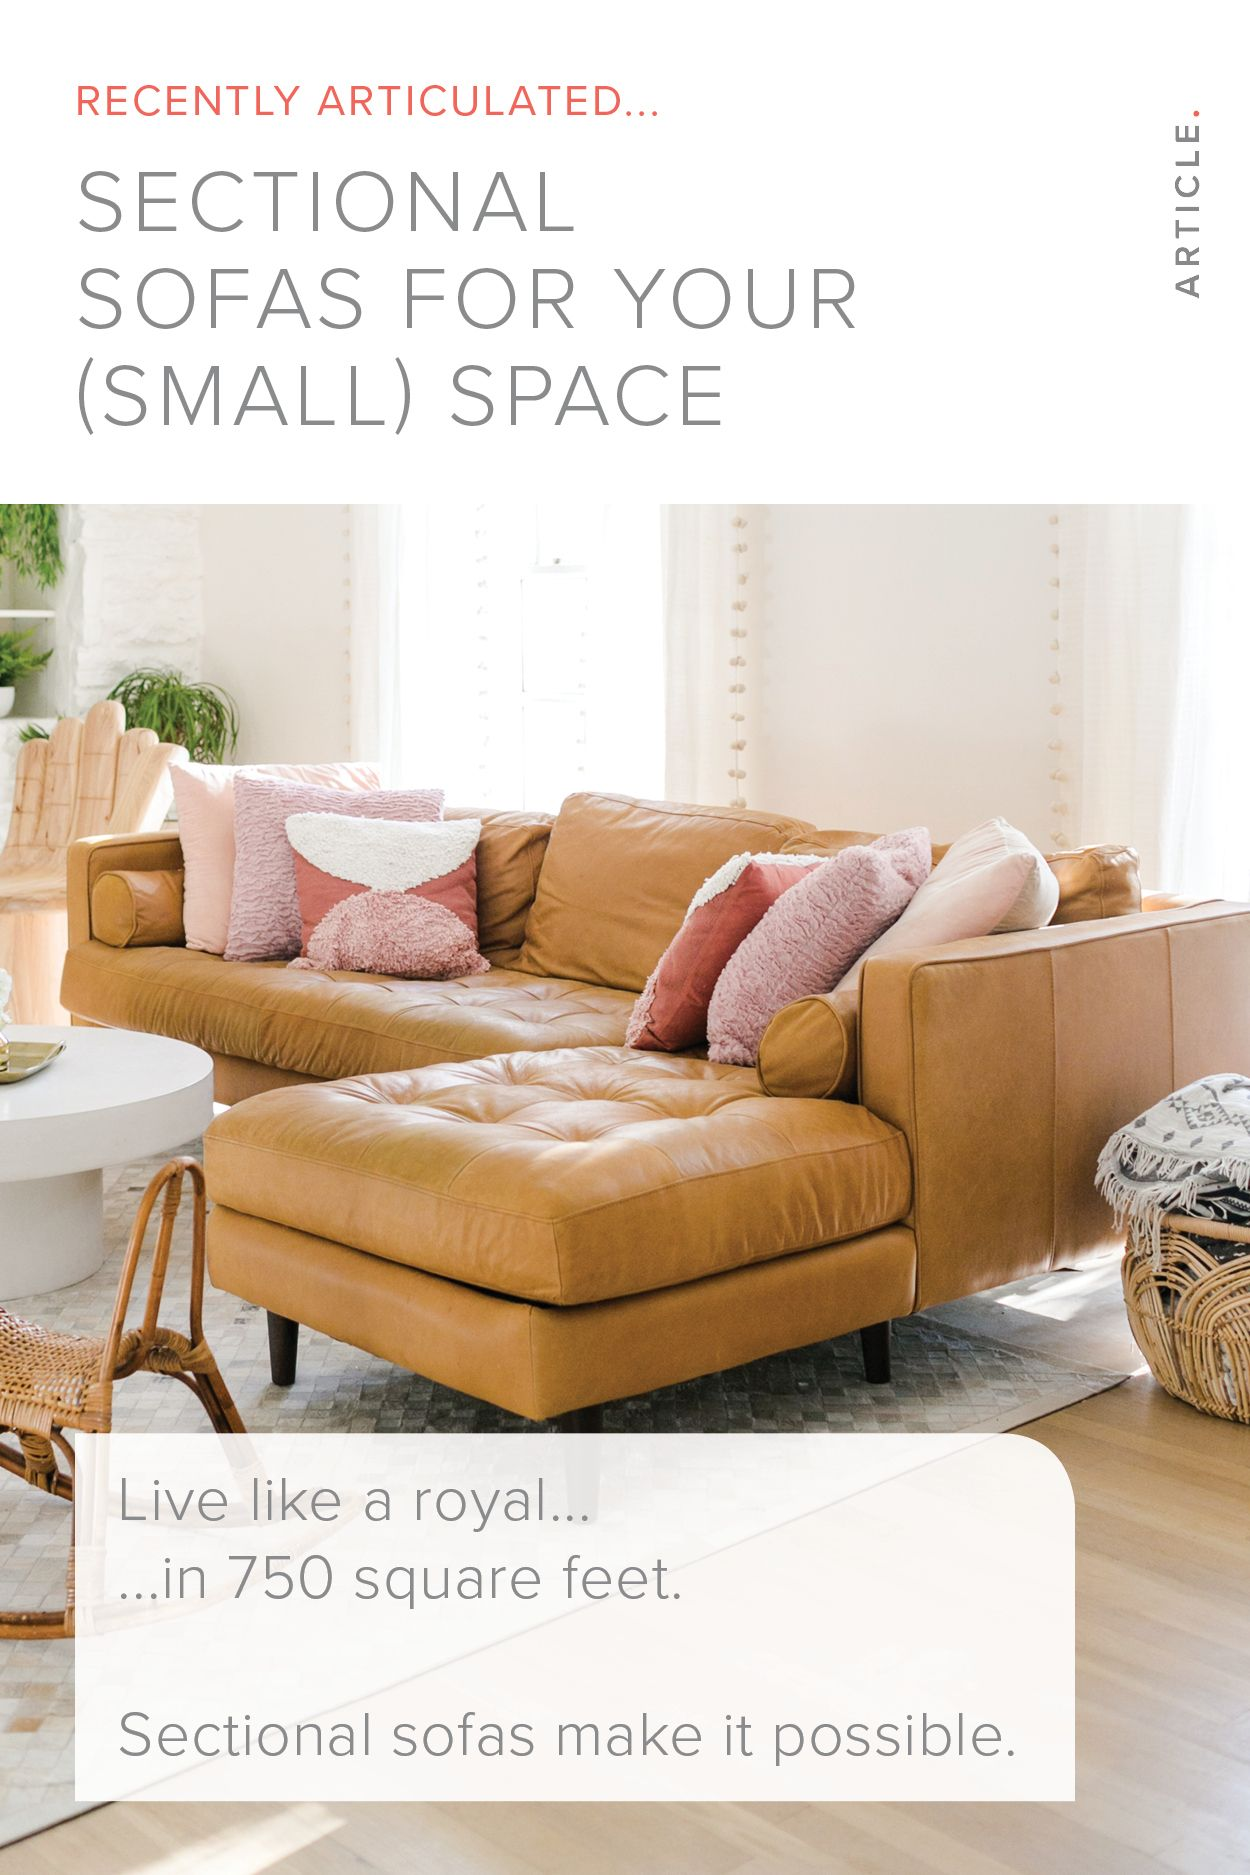 The Best Sectional Sofas for Small Spaces   Articulate   Sofas for ...